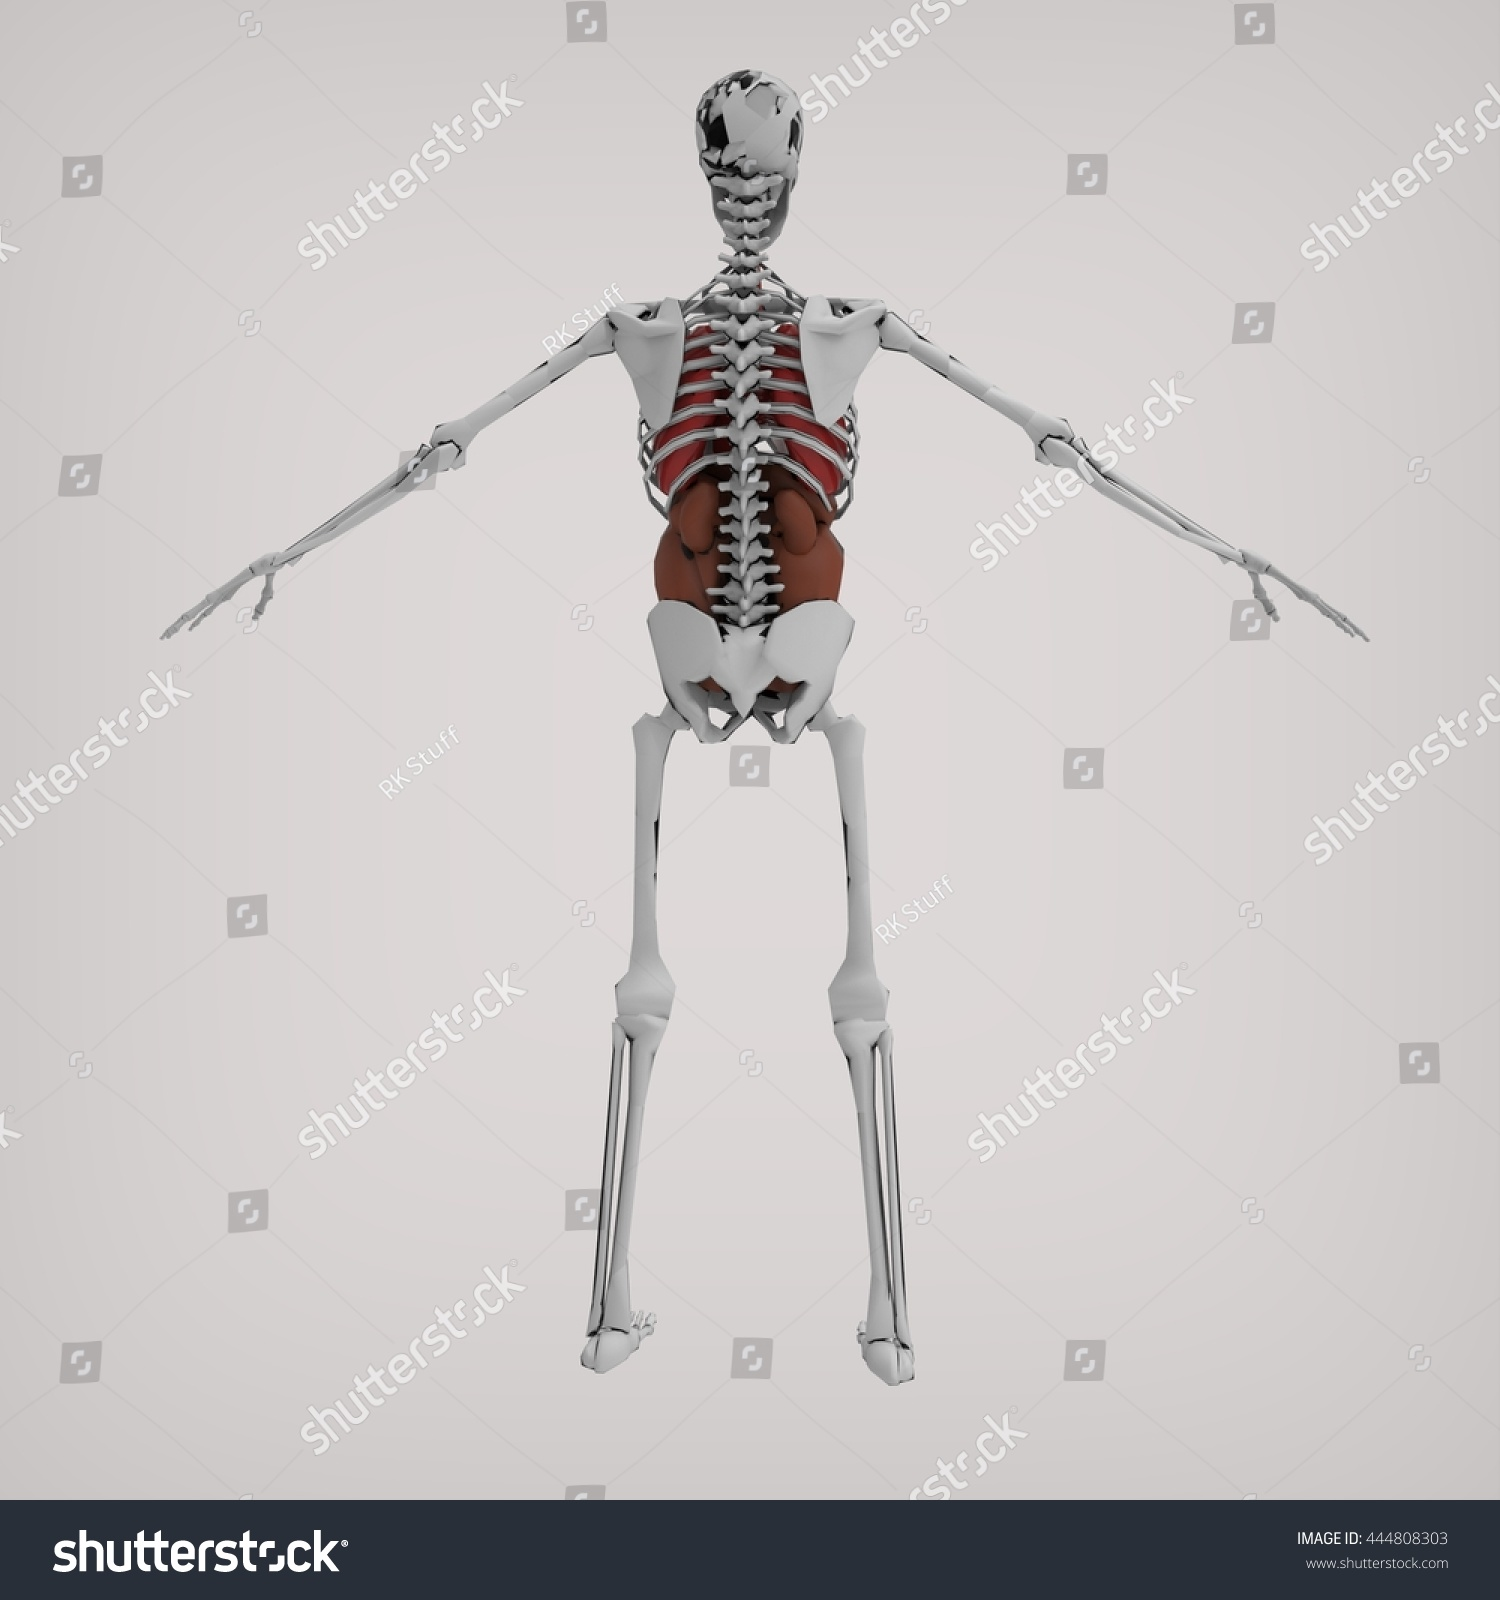 Royalty Free Stock Illustration Of Human Skeleton Back Anatomy 3 D